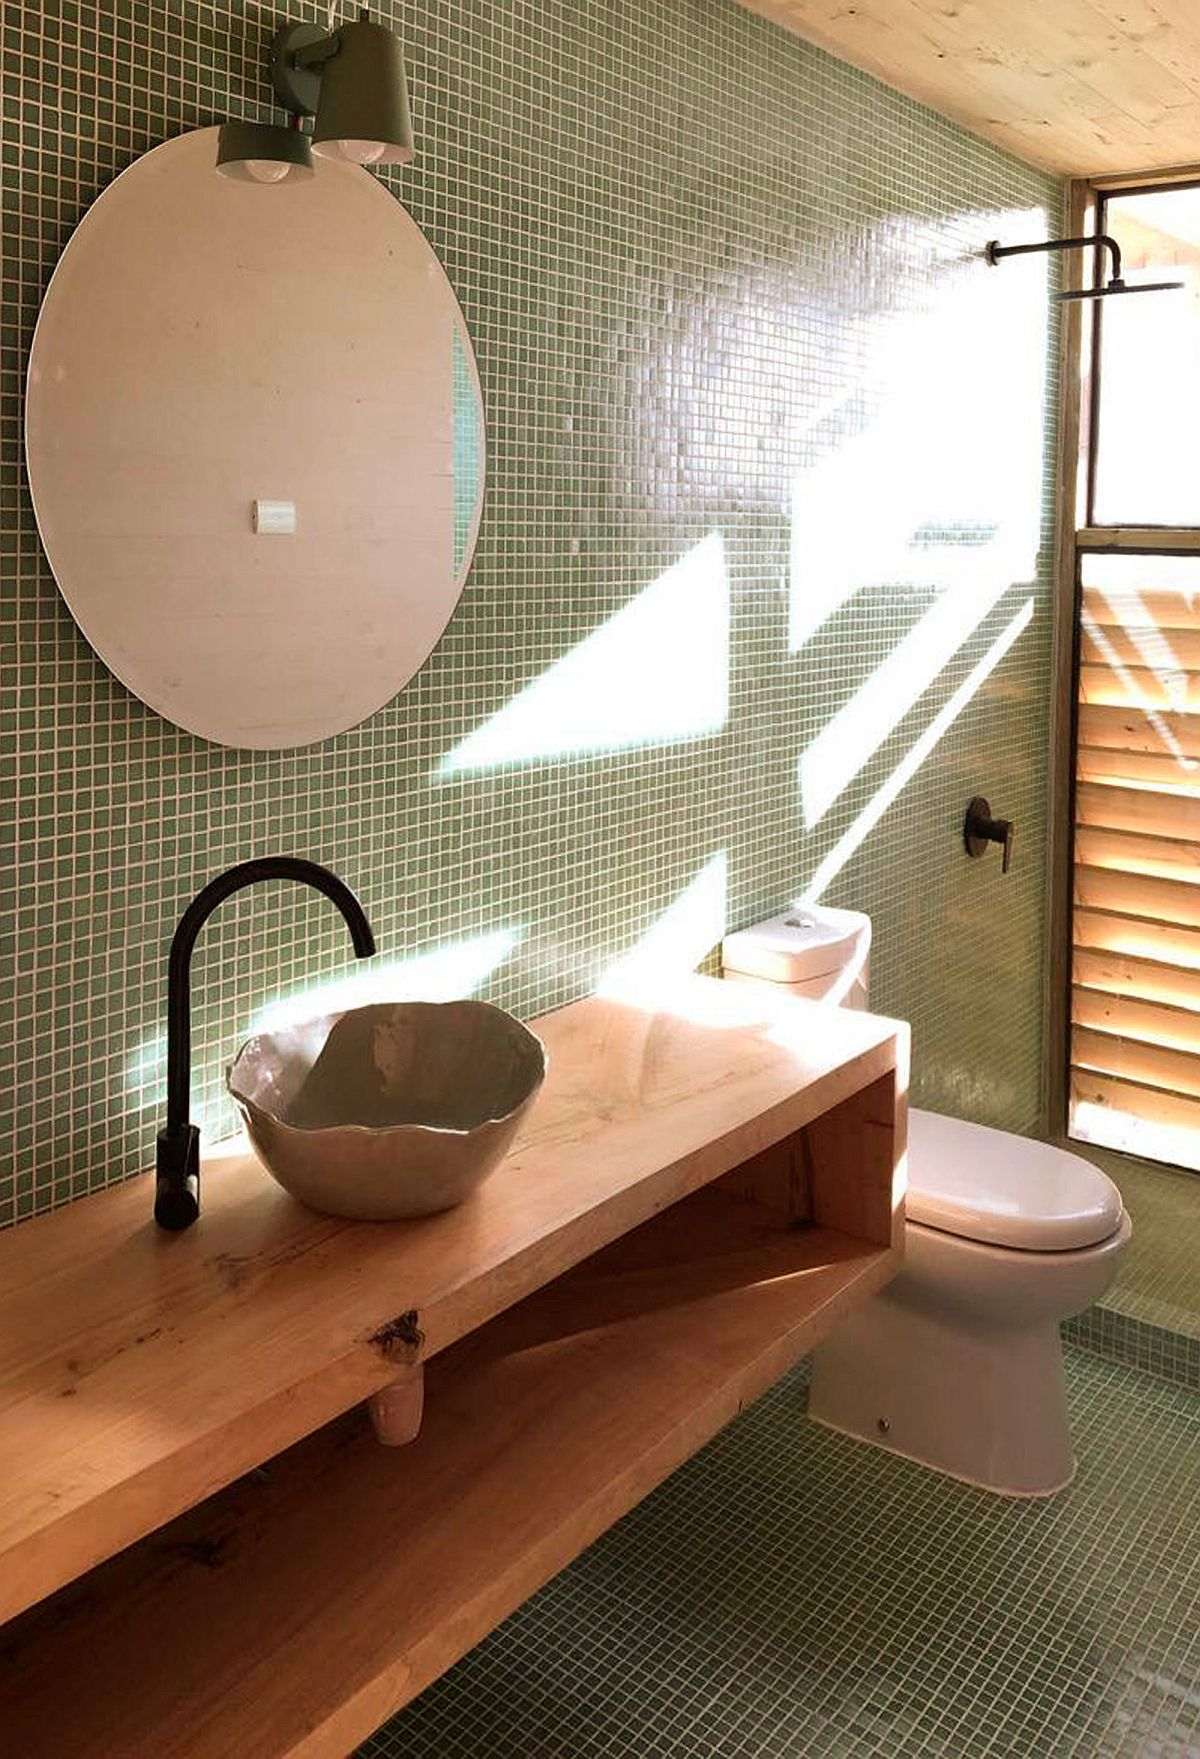 Green tiles in the bathroom add color to the modern space